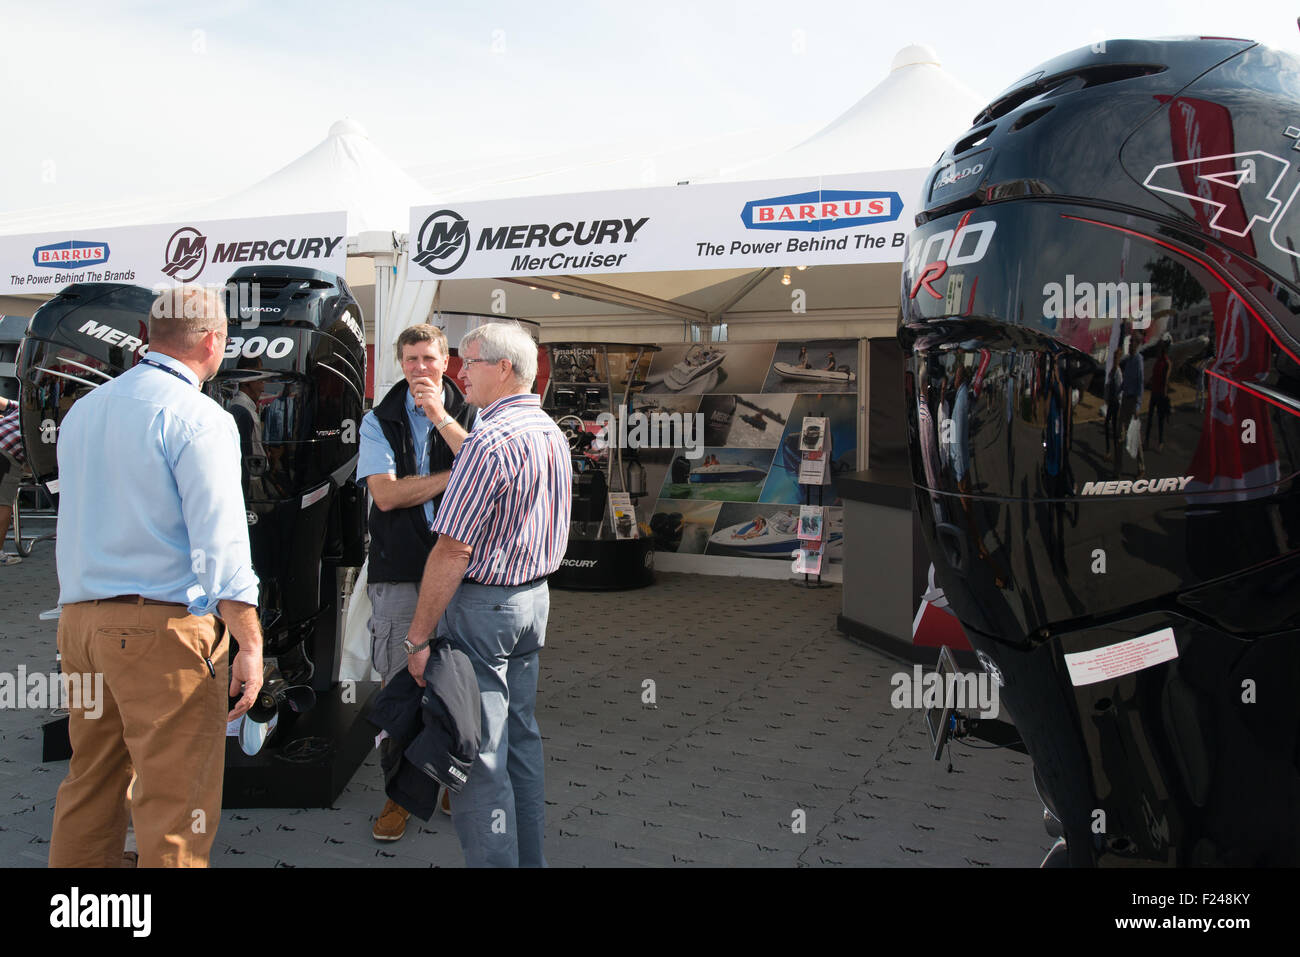 Southampton, UK. 11th September 2015. Southampton Boat Show 2015. Visitors to the Mercury stand speak with an exhibitor Stock Photo